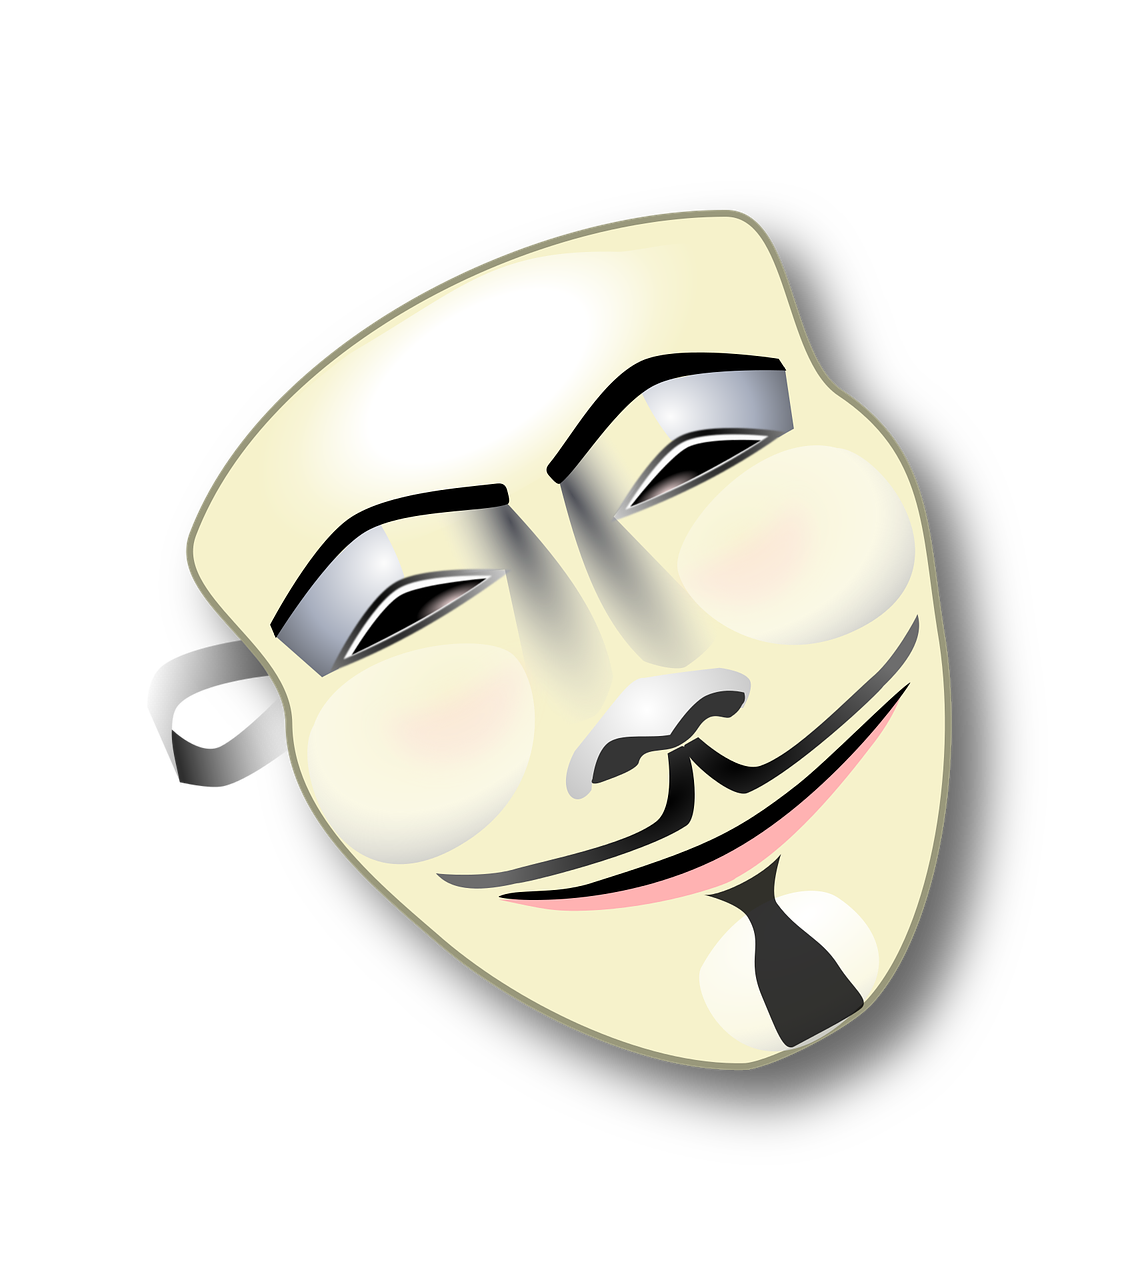 Anonymous Mask PNG Image HD SVG Clip arts